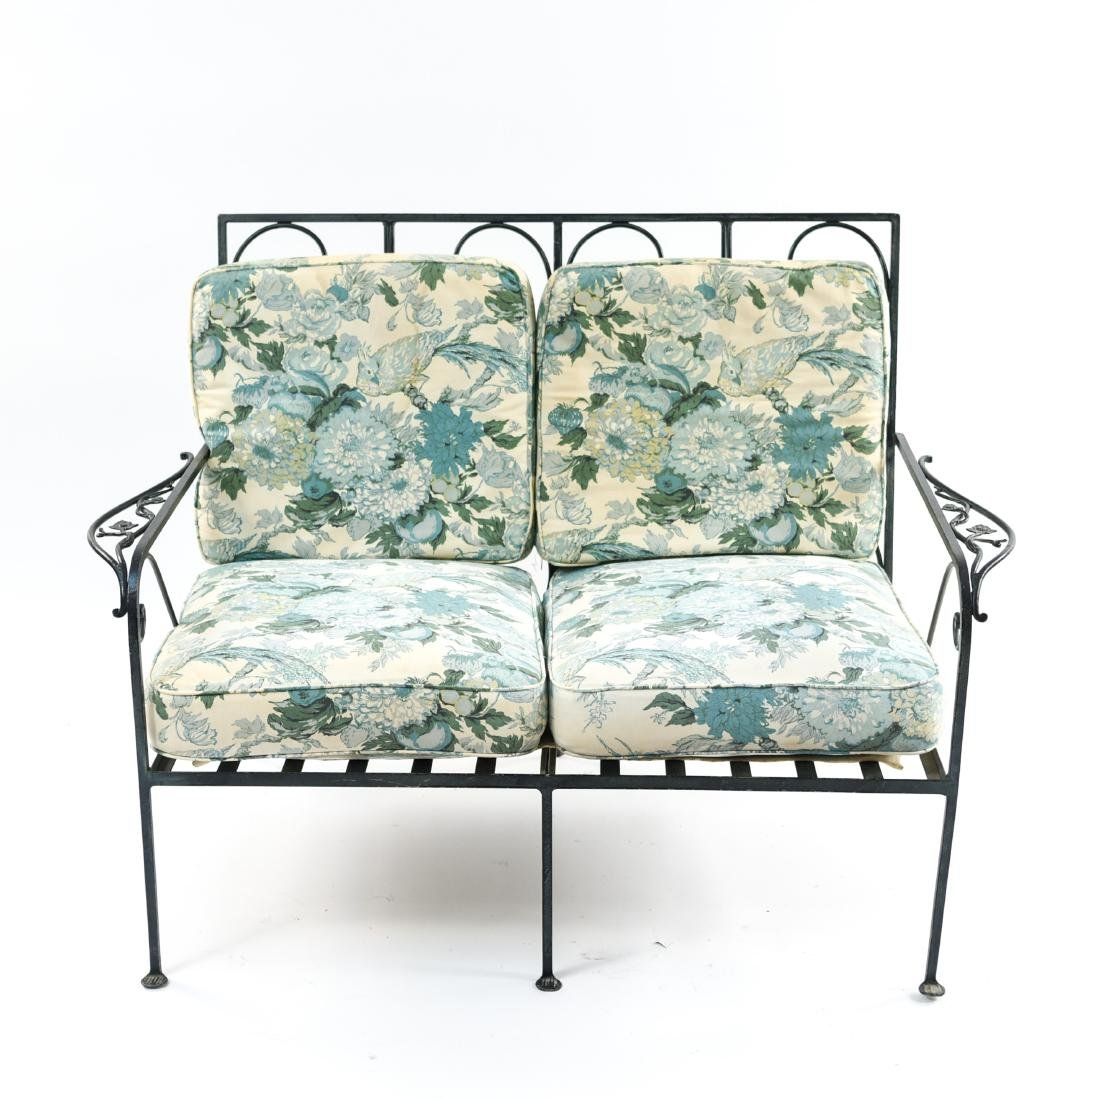 IRON TWO SEATER OUTDOOR LOVESEAT SOFA